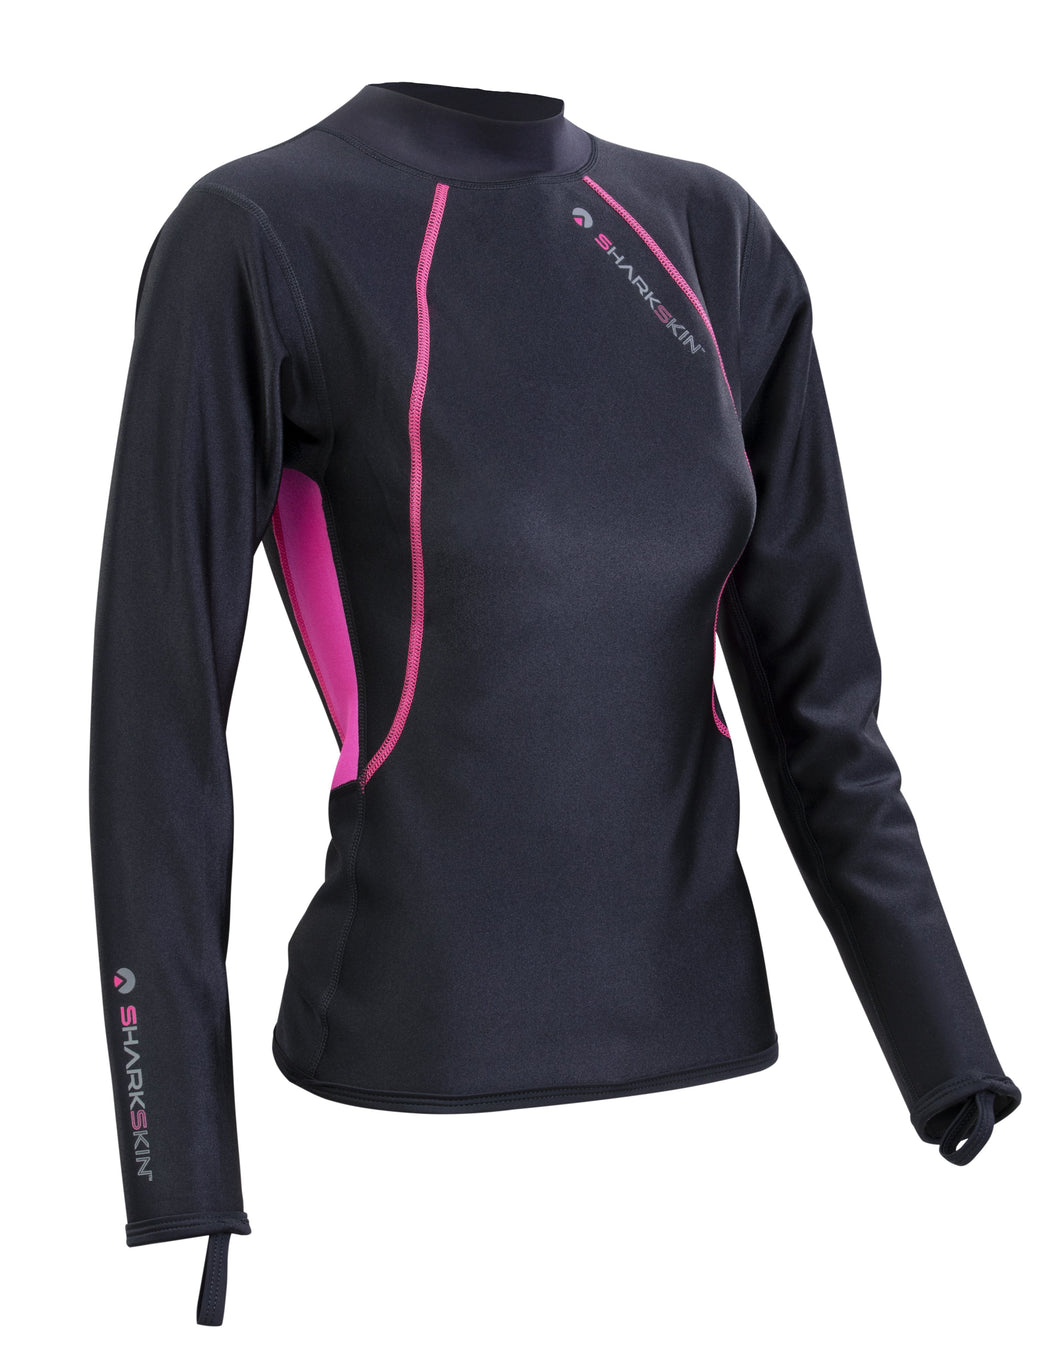 Chillproof Long-Sleeve Women's